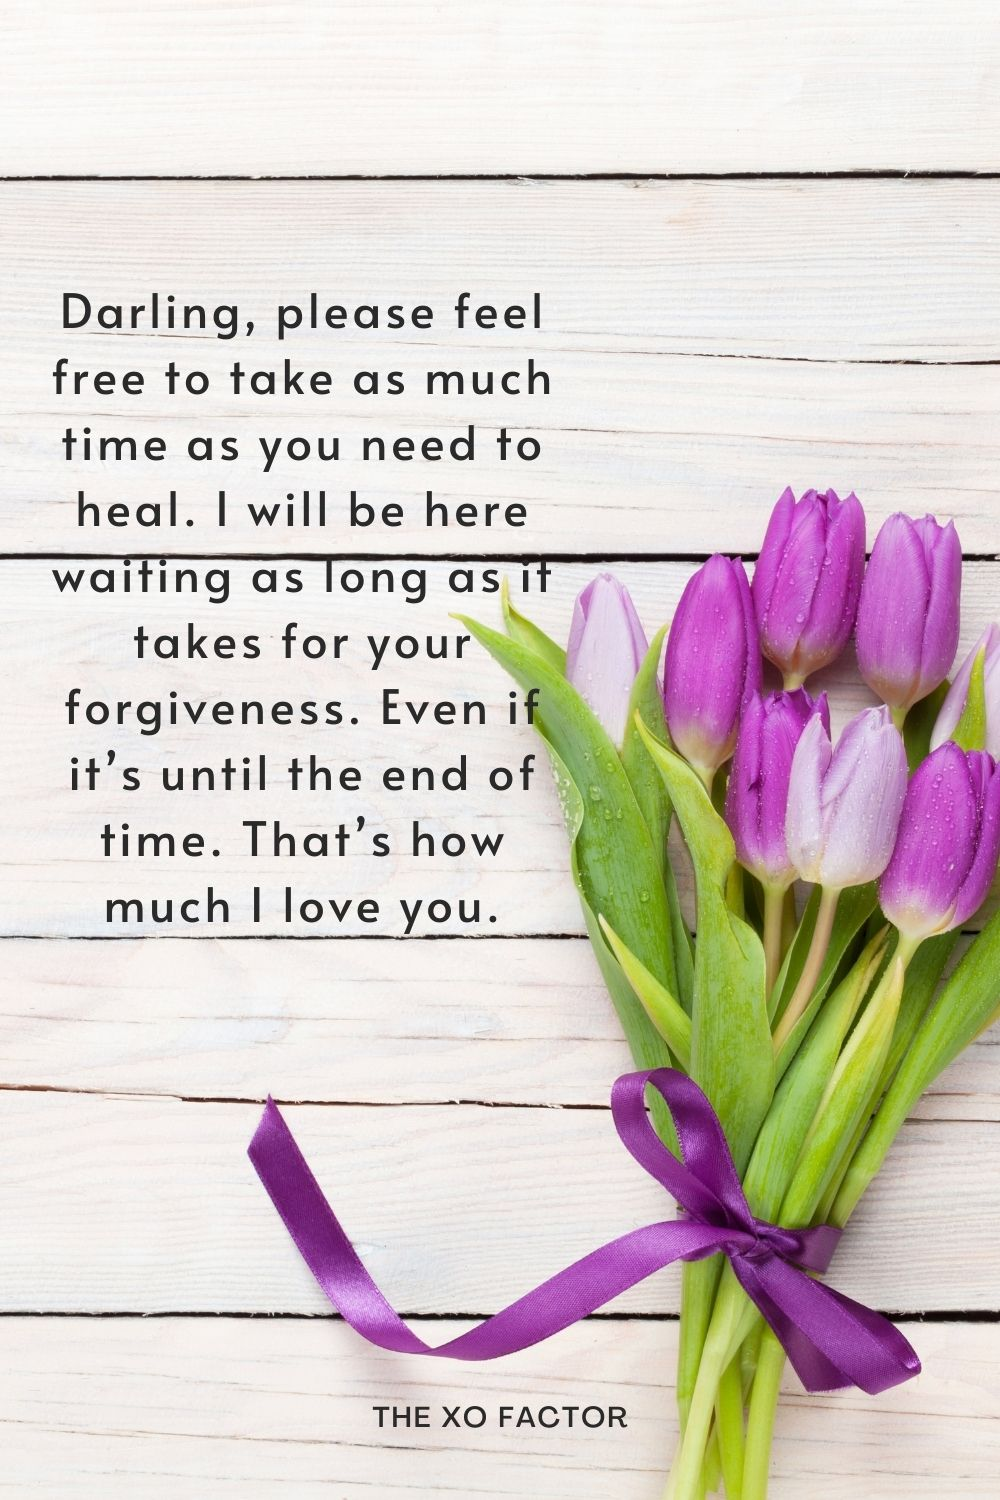 Darling, please feel free to take as much time as you need to heal. I will be here waiting as long as it takes for your forgiveness. Even if it's until the end of time. That's how much I love you.